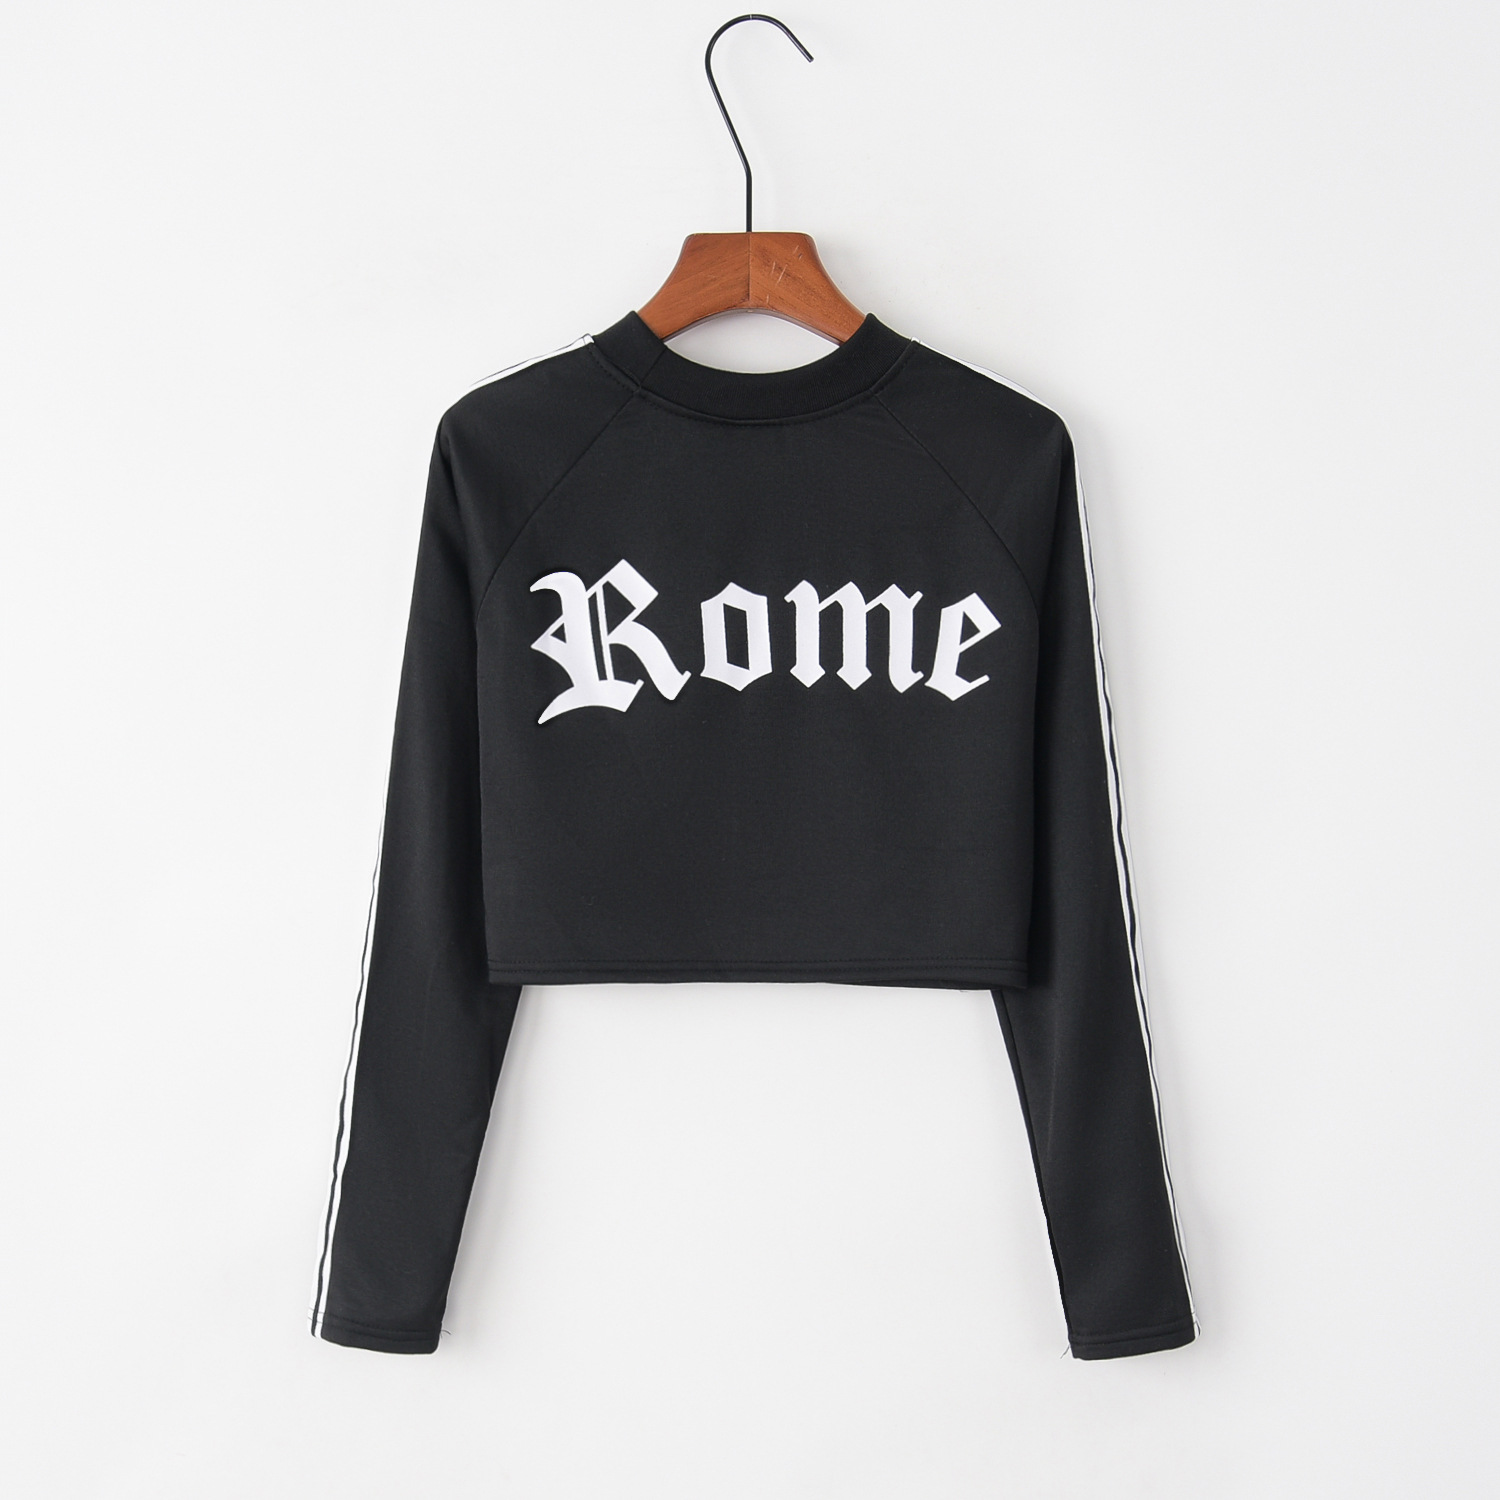 Rome Rune  Letter Print 2020 New Design Hot Sale Hoodies Sweatshirts Women Casual Harajuku Sweat Girls European Tops Korean